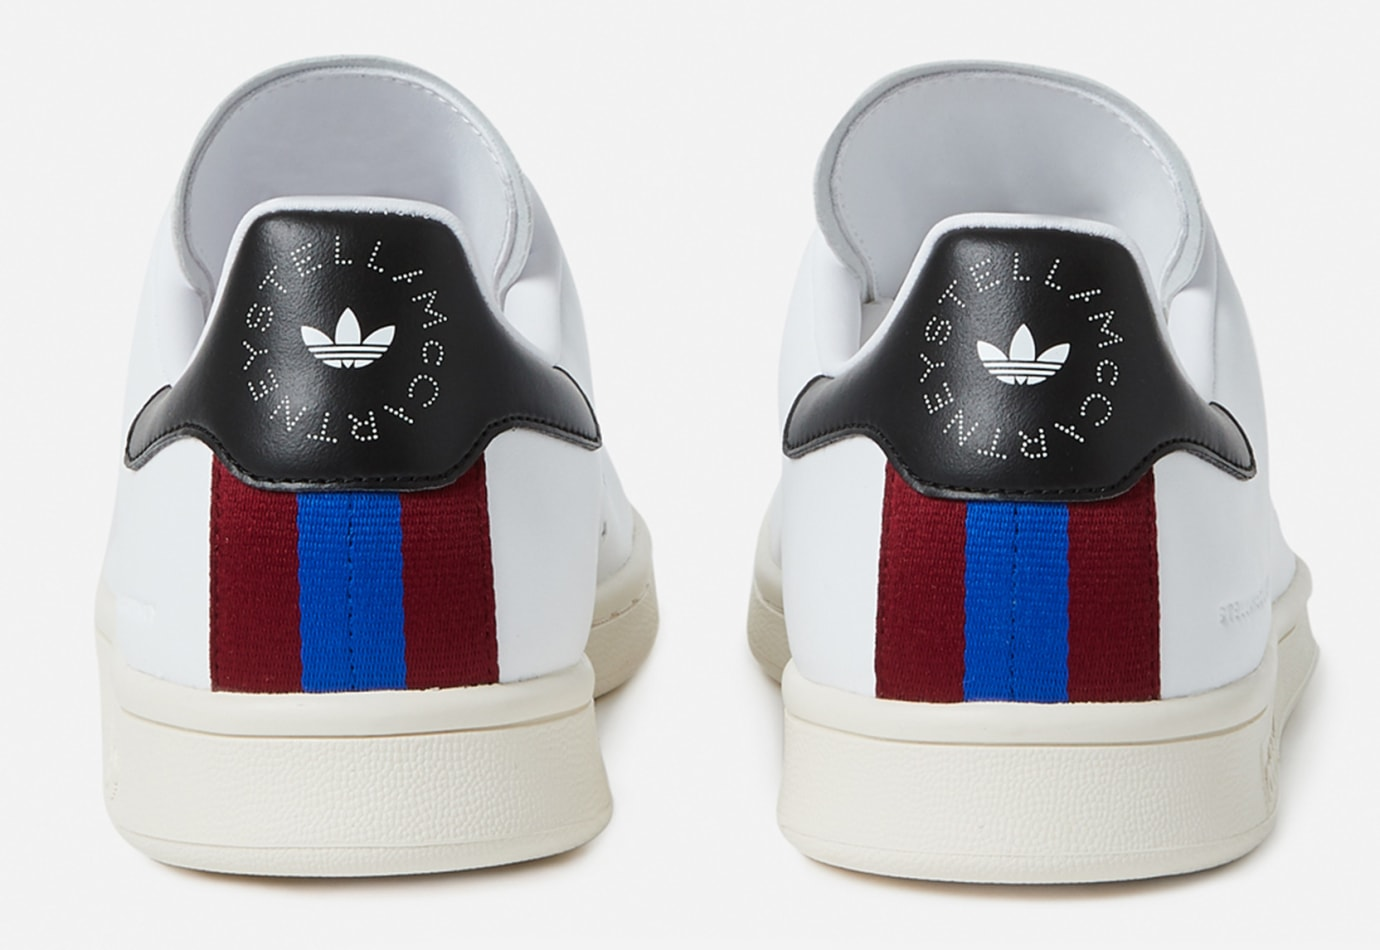 new arrival f6c64 45c2d Image via Stella McCartney Stella McCartney x Adidas Stan Smith (Heel)